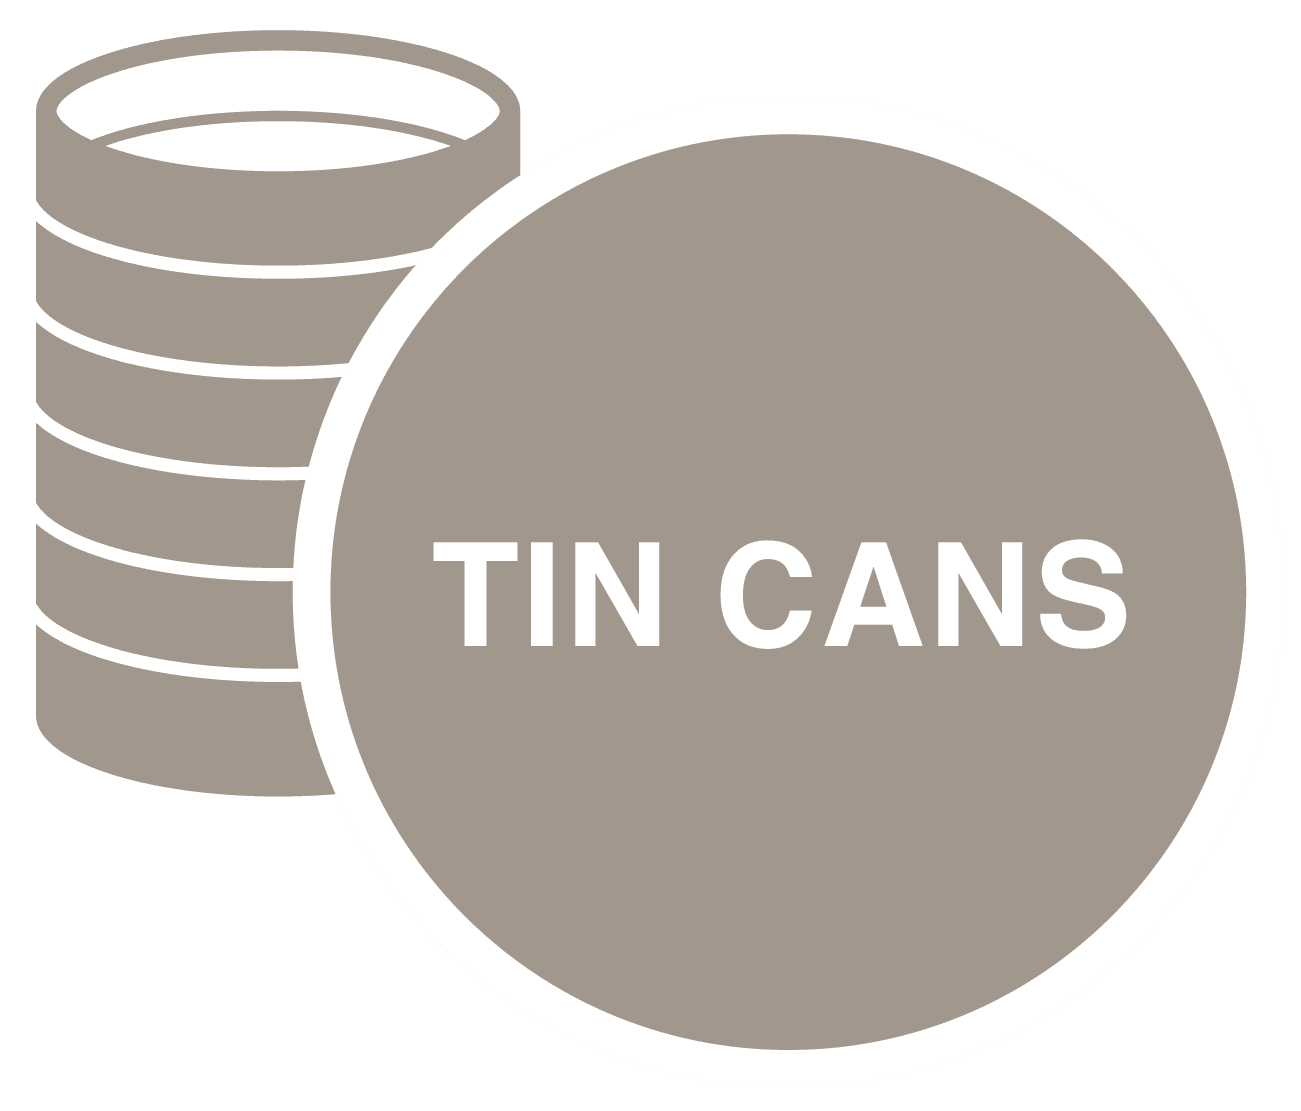 recyclable icons_tin